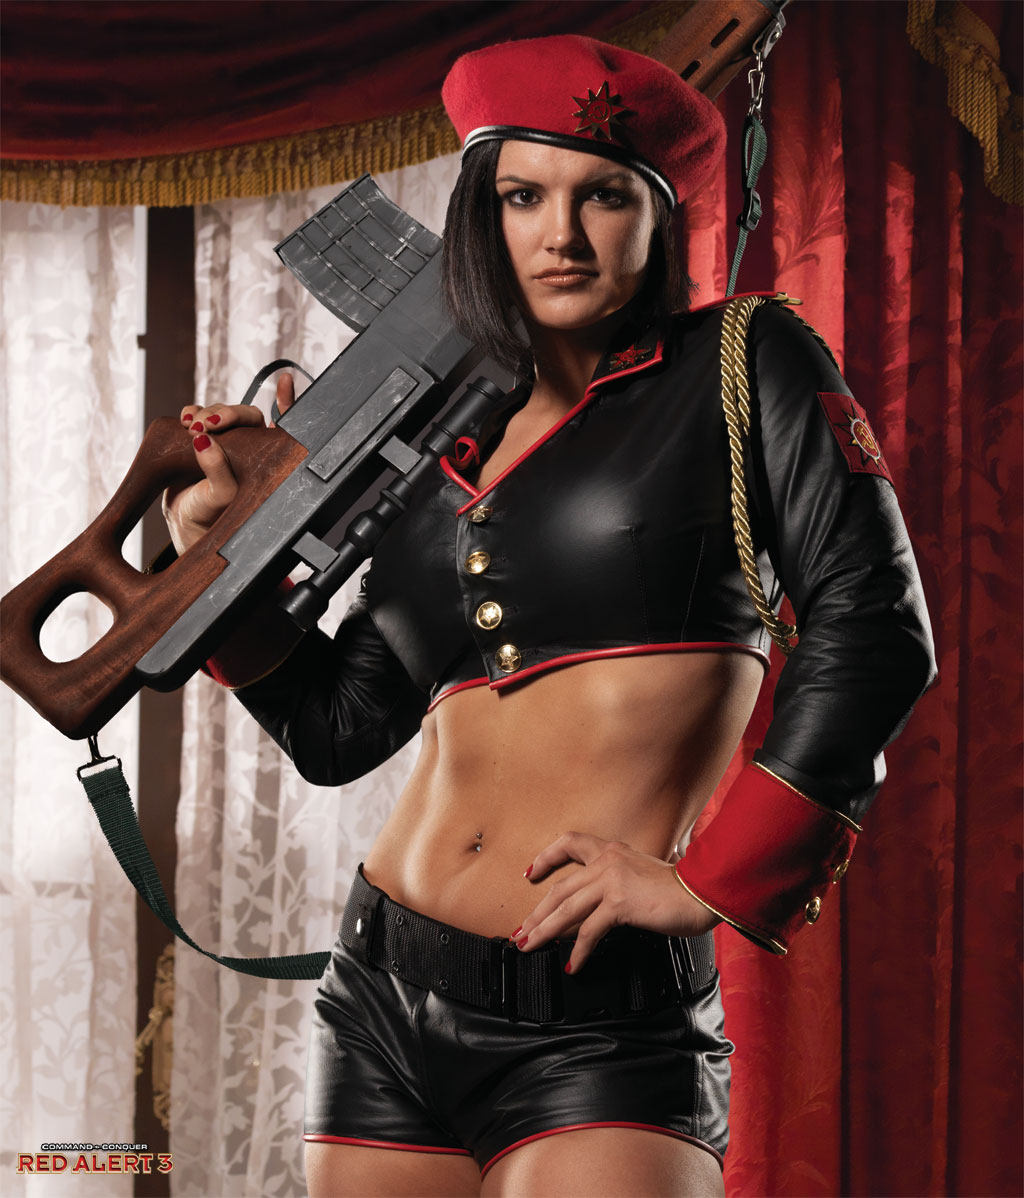 http://lowdownblog.files.wordpress.com/2012/01/gina-carano-redalert3-03.jpg